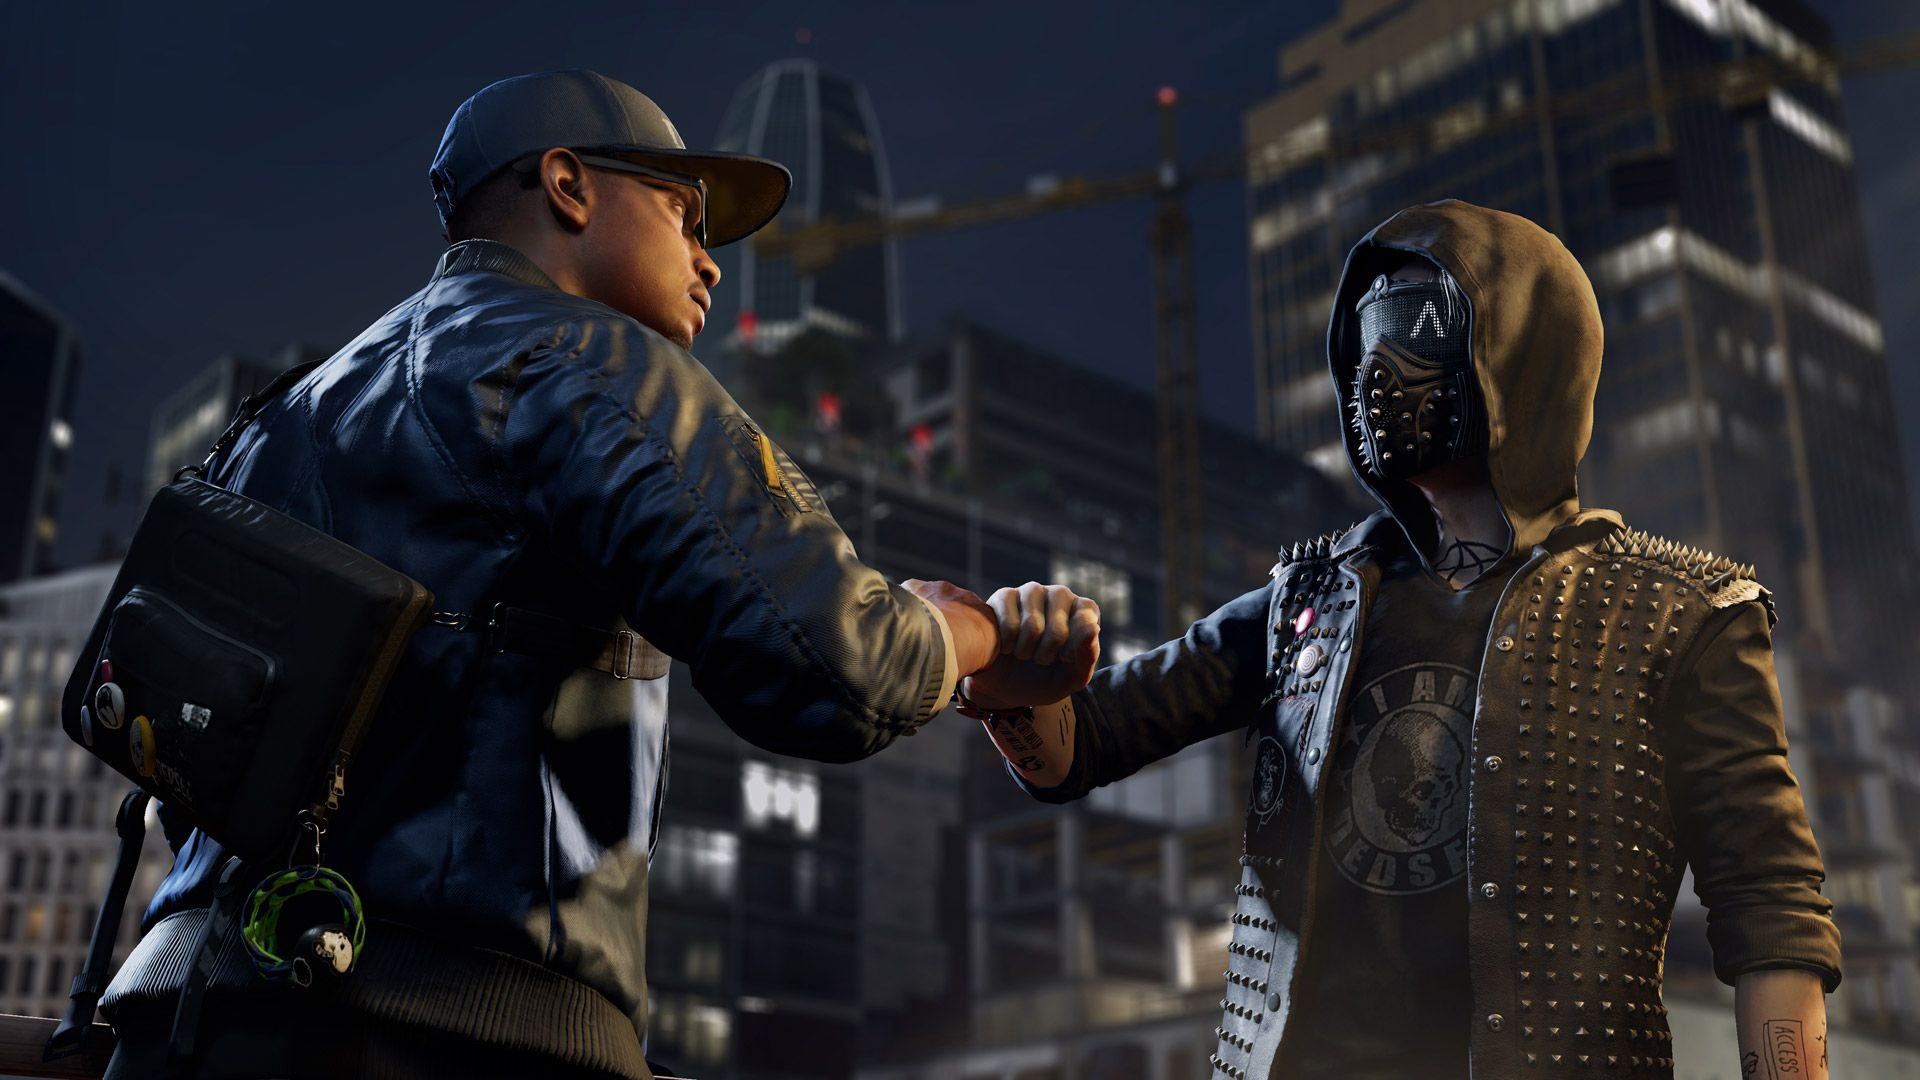 WD2 screen thewrench e3 160613 230pm 1465823085.0 New Watch Dogs 2 Footage Highlights Open World Multiplayer Mayhem